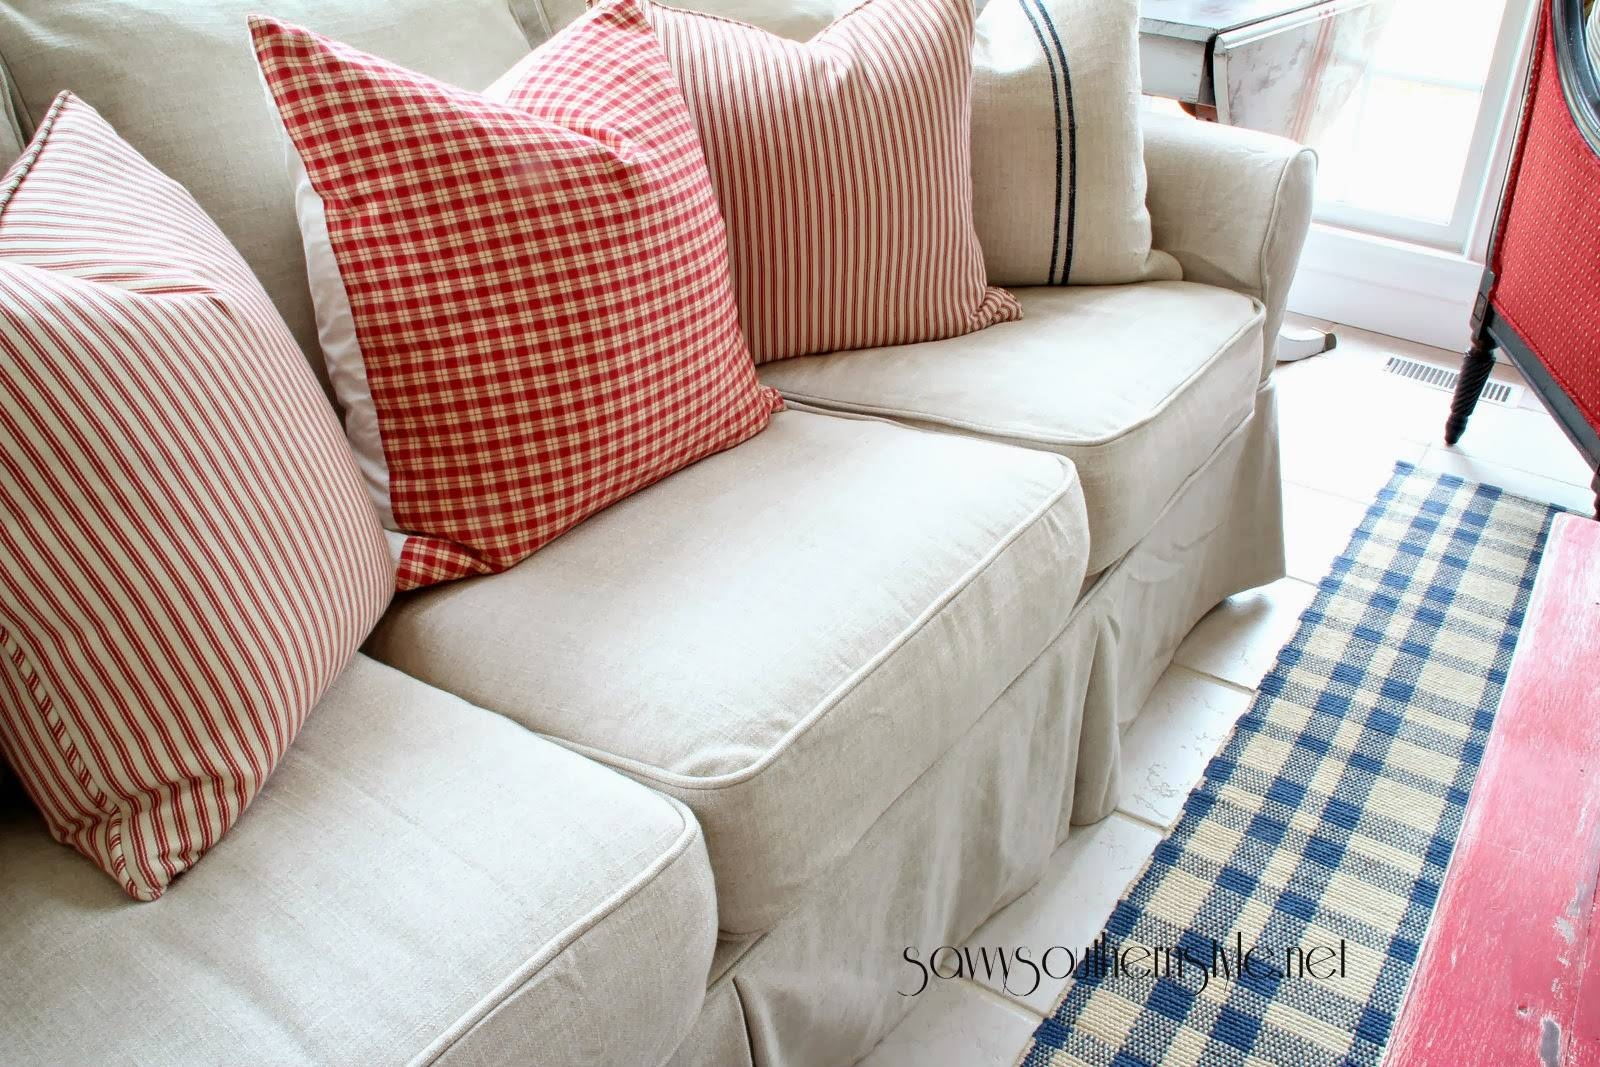 Custom Slipcovers And Couch Cover For Any Sofa Online with regard to Customized Sofas (Image 6 of 30)